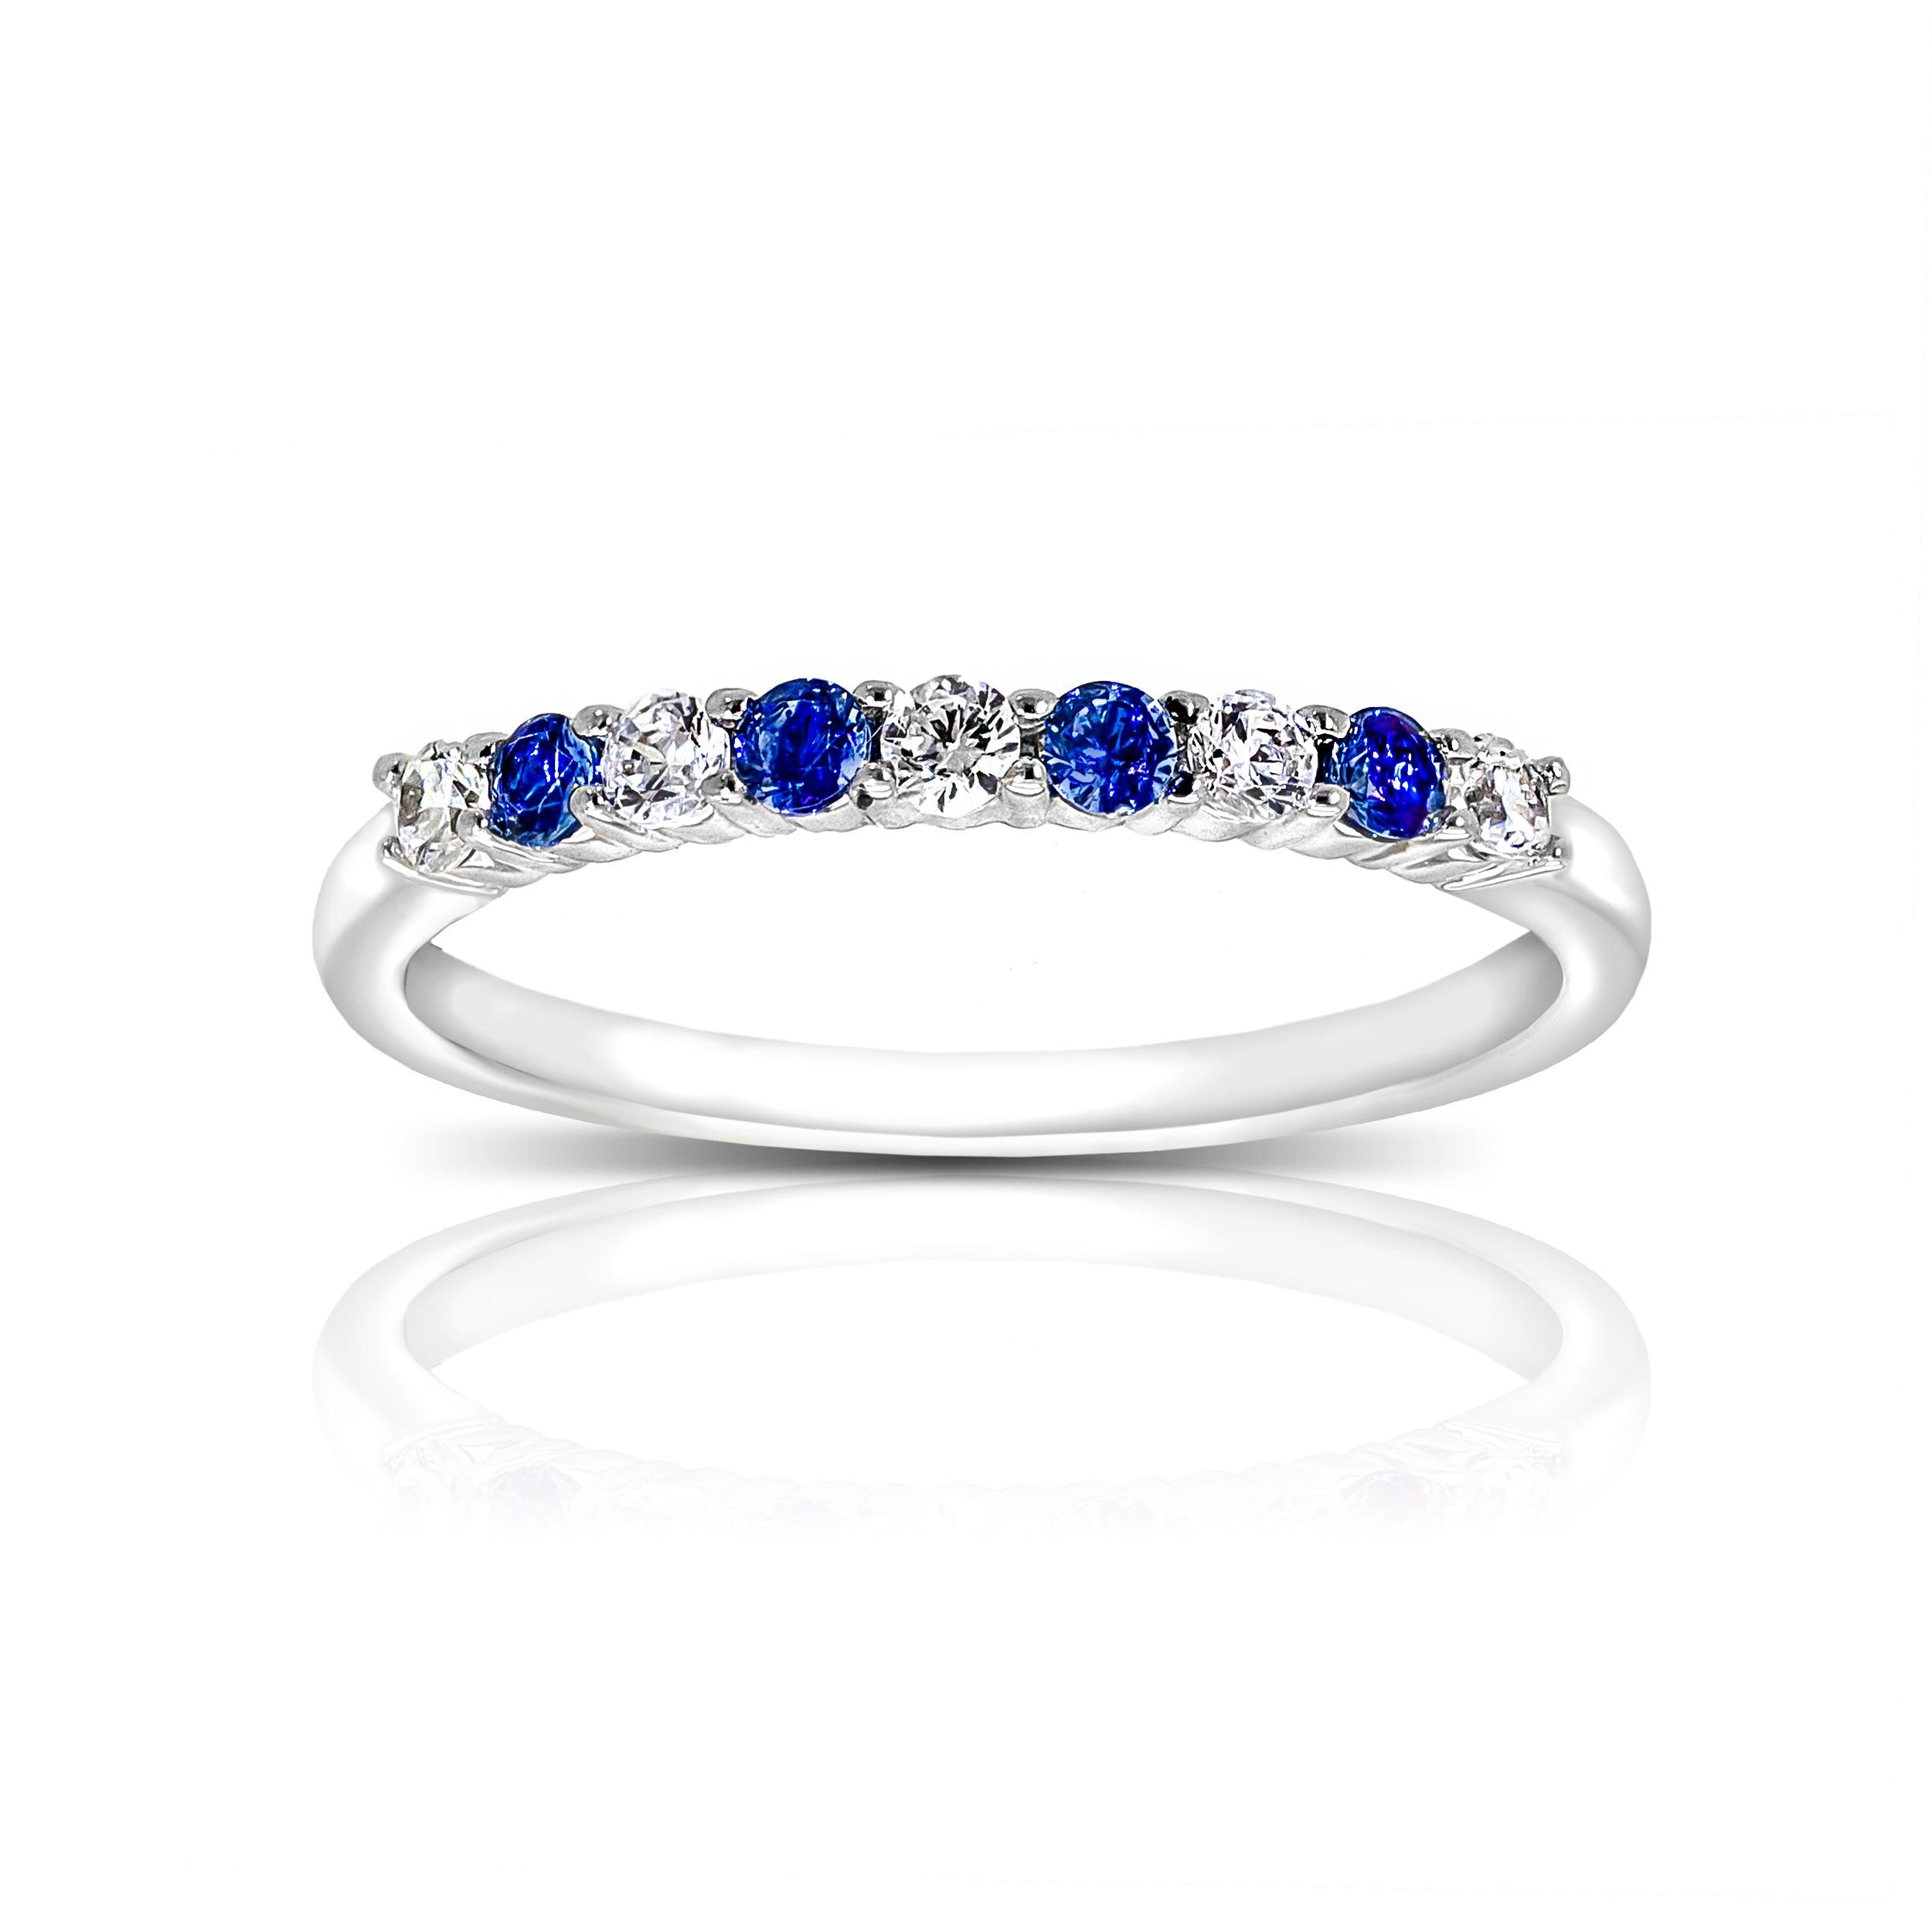 Blue Sapphire And Diamond Gemstone Ring In 10k White Gold Diamond Gemstone Gemstone Rings White Gold Rings